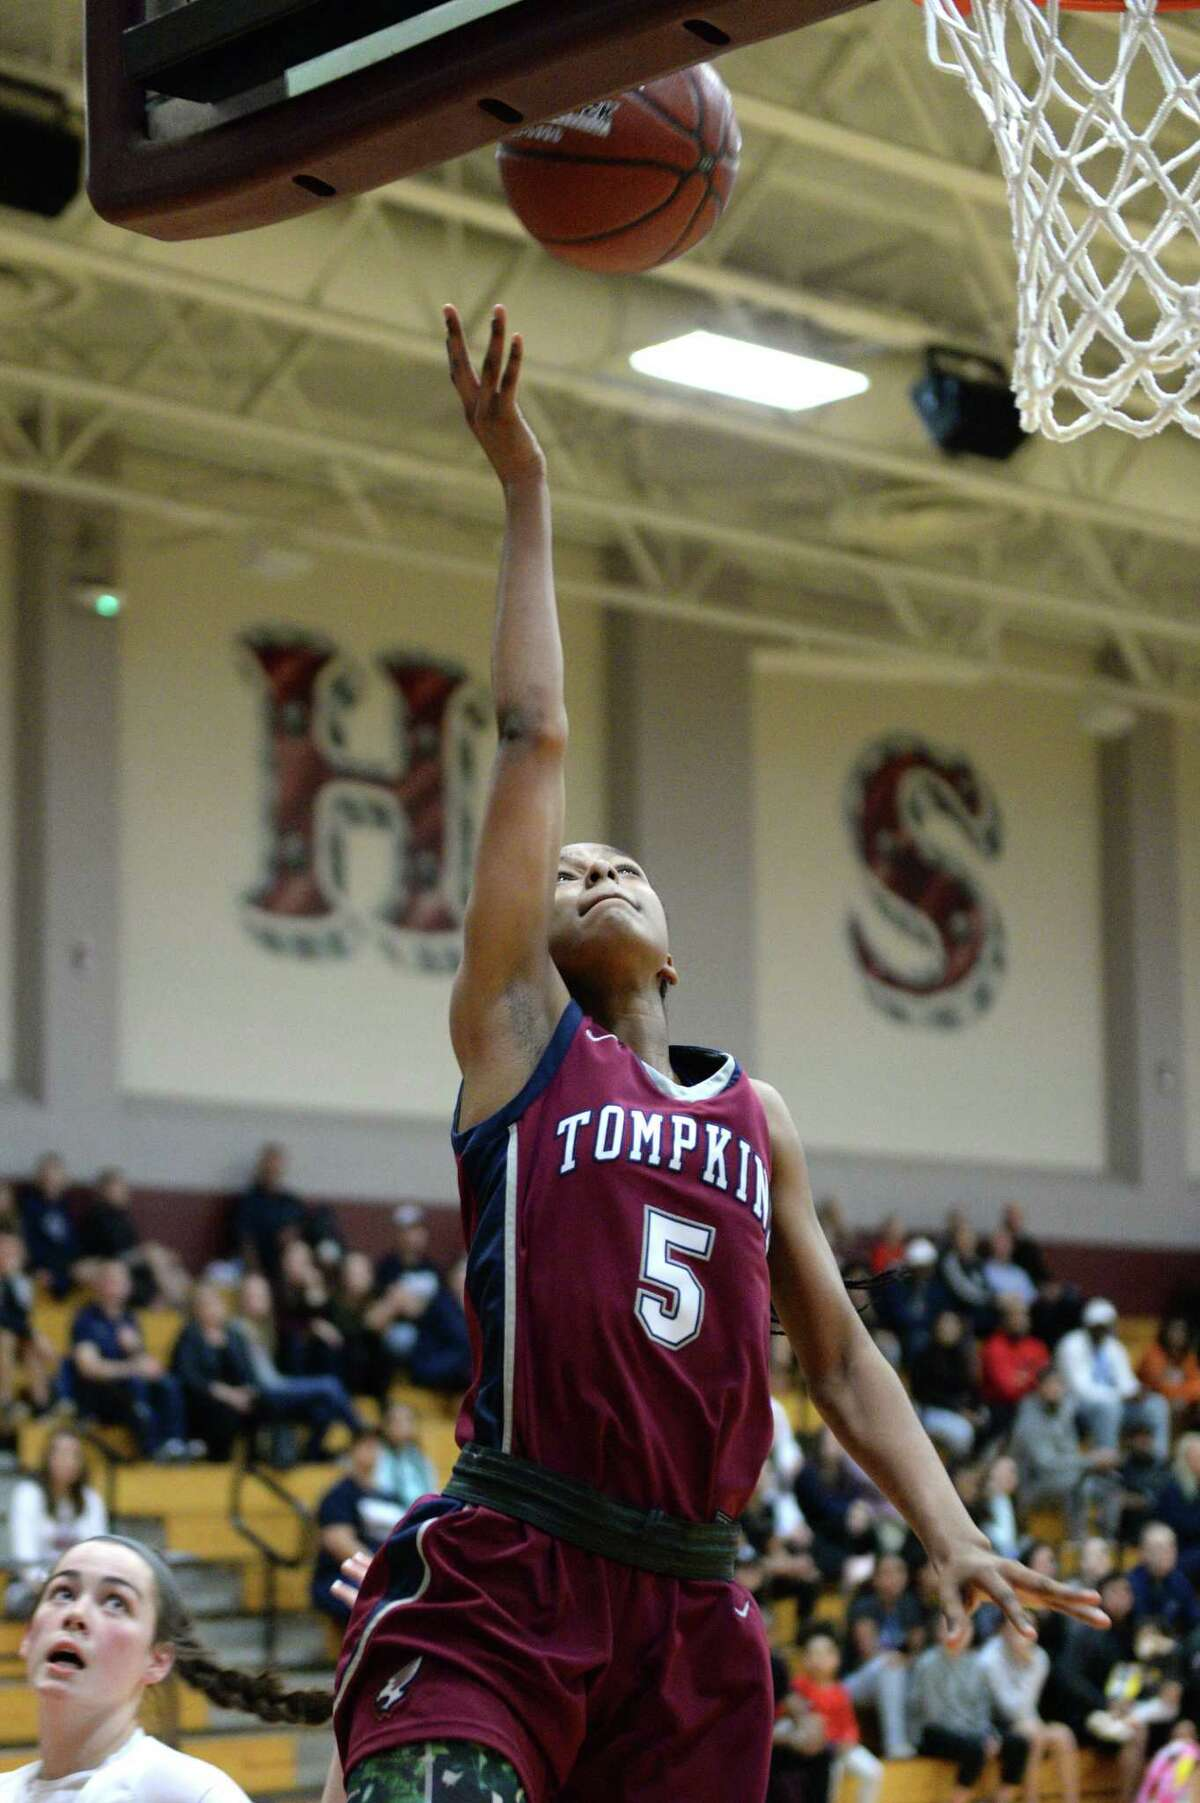 Crystal Smith (5) of Tompkins attempts a lay-up on a fast break during the first quarter of a 6A Region III District 19 Girls basketball game between the Cinco Ranch Cougars and the Tompkins Falcons on Friday, January 3, 2020 at Cinco Ranch HS, Katy, TX.